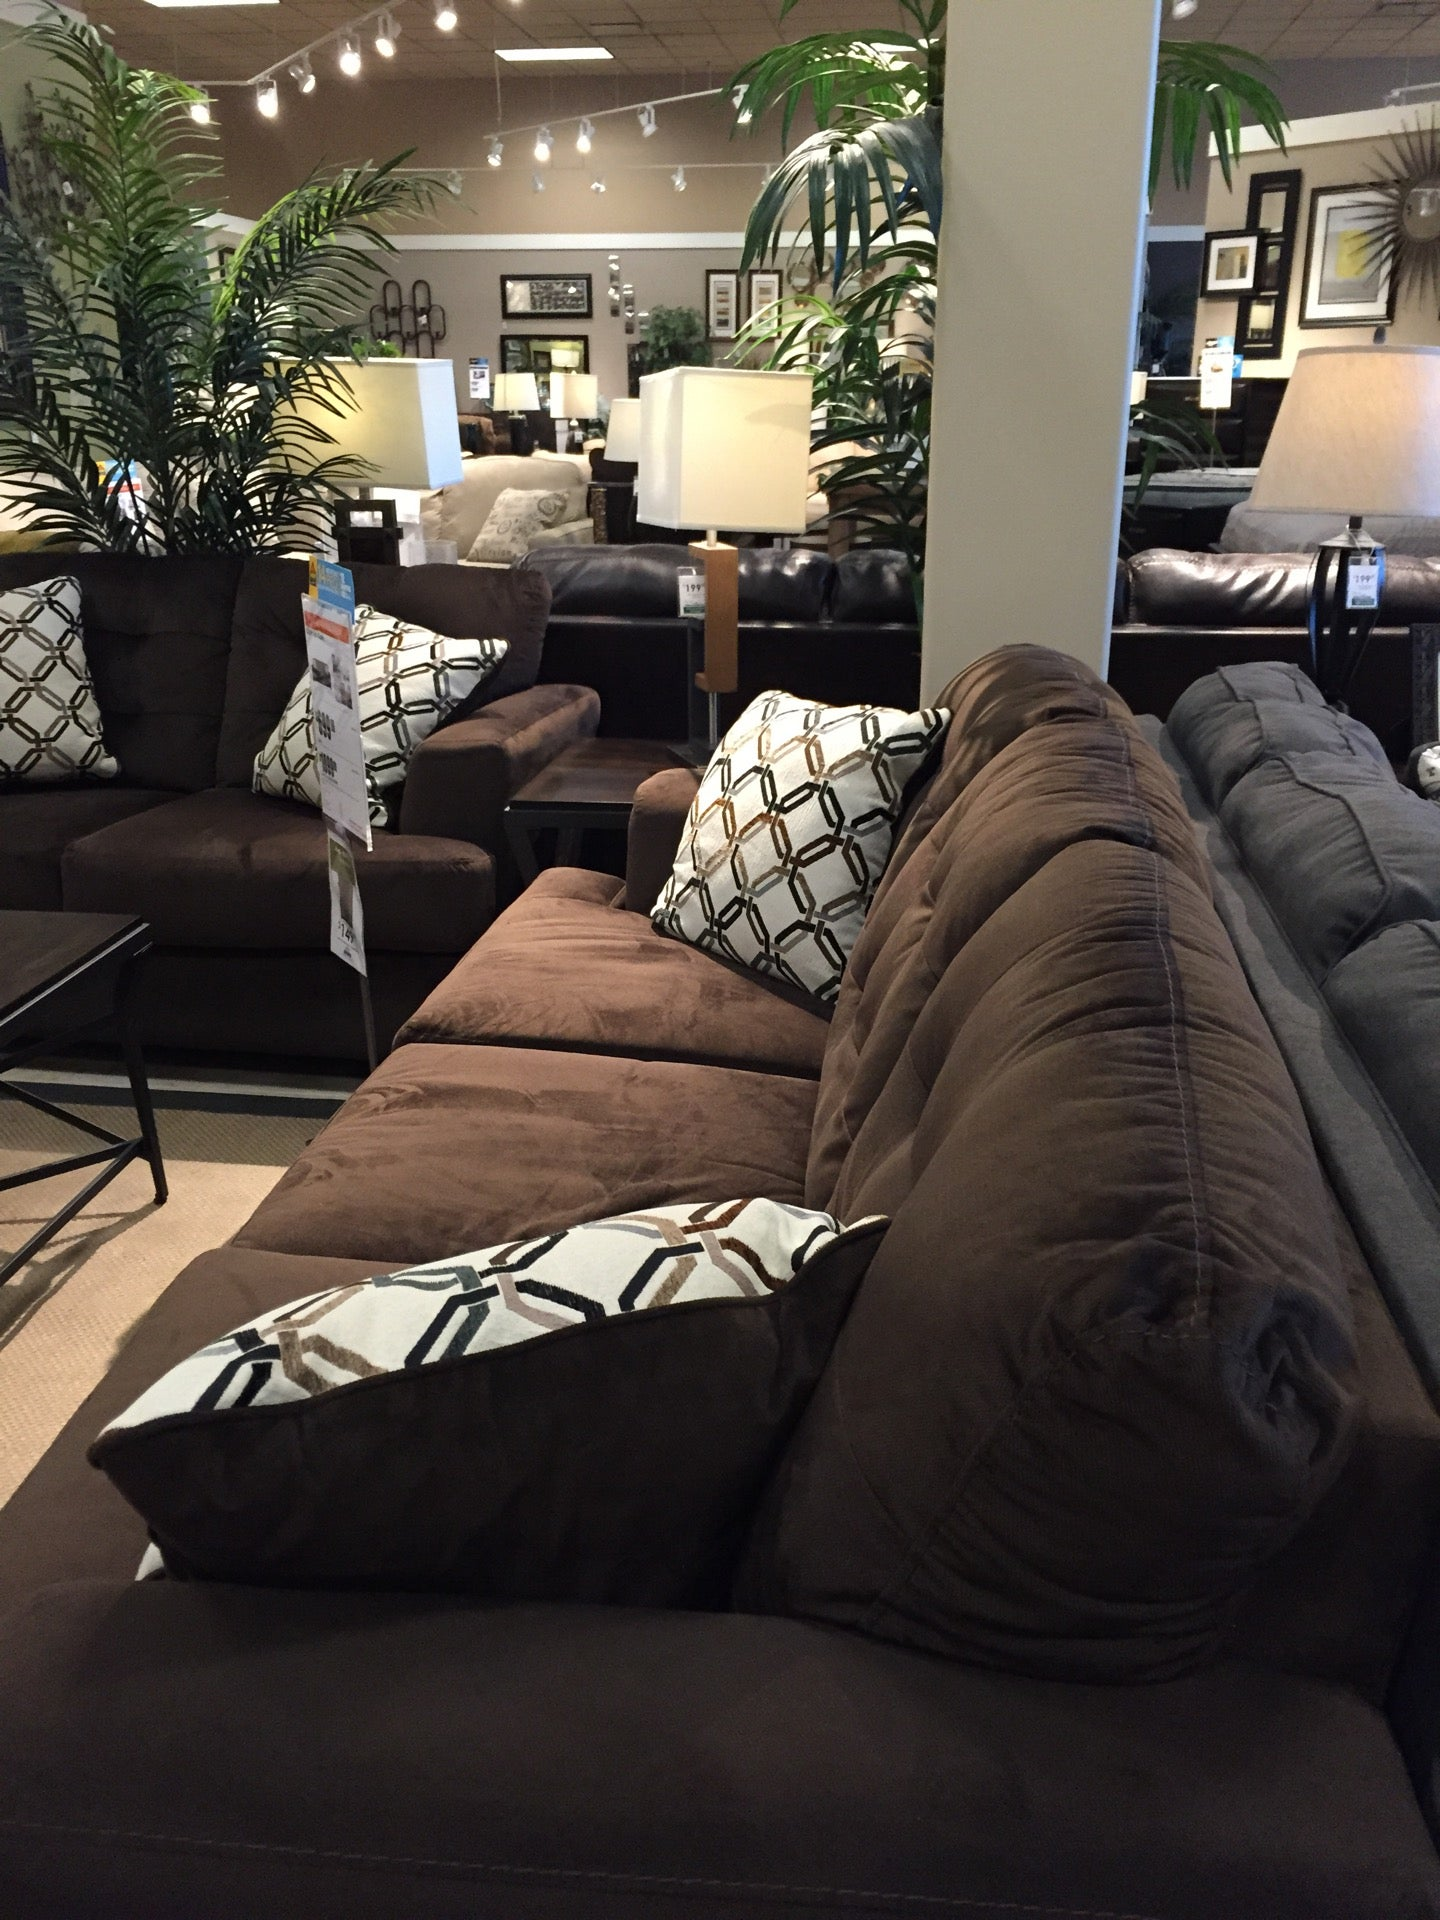 Ashley Furniture Homestore In Burbank Parent Reviews On Winnie